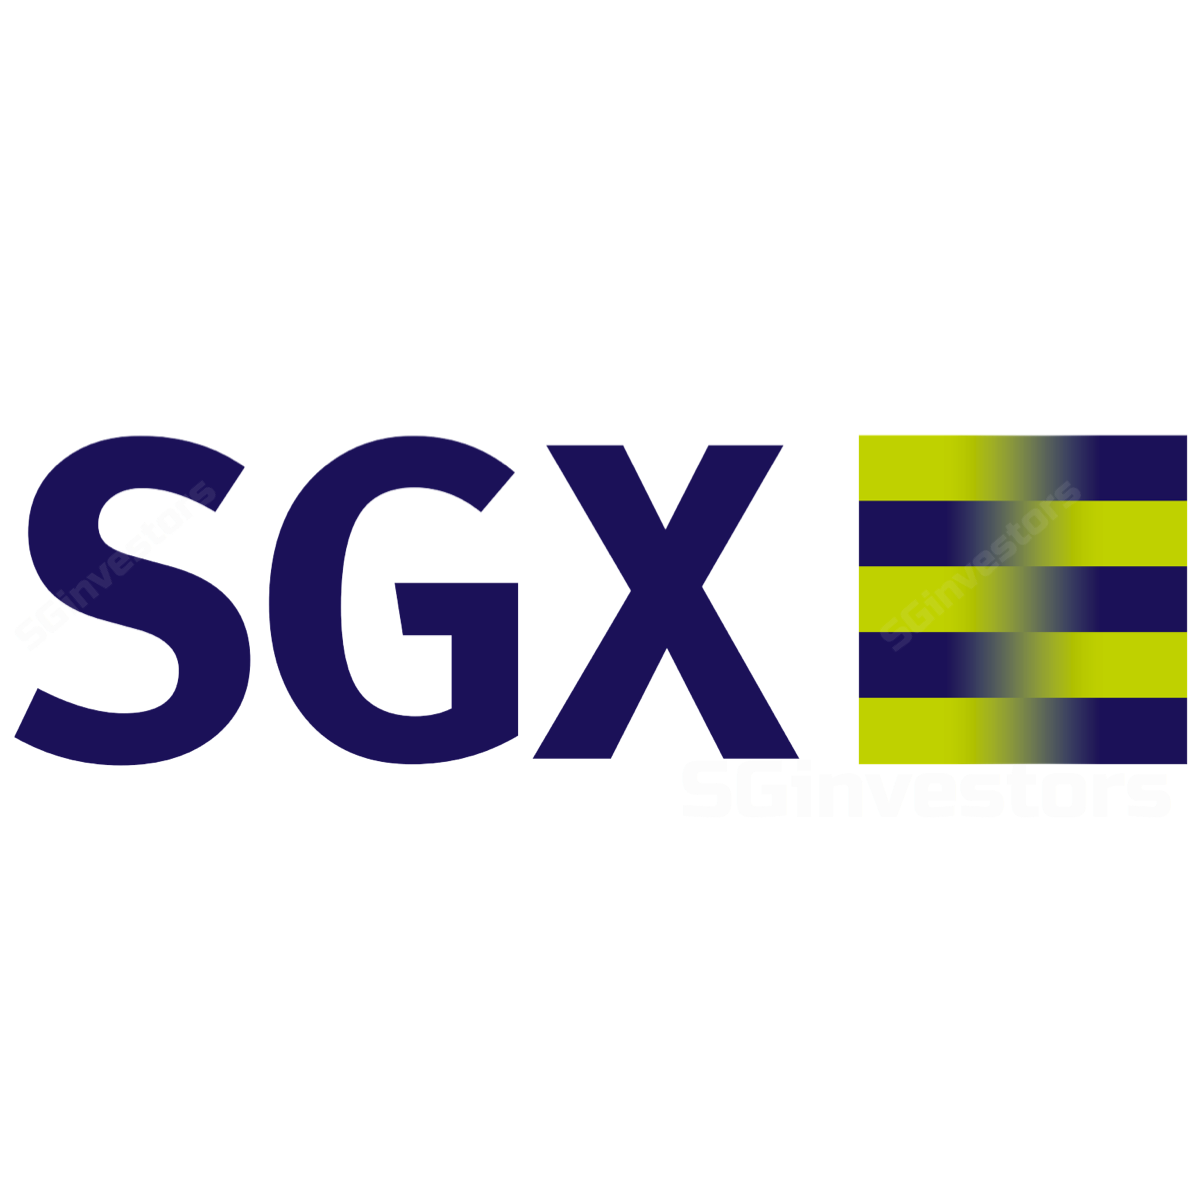 SGX - OCBC Investment 2017-01-20: Outlook is improving